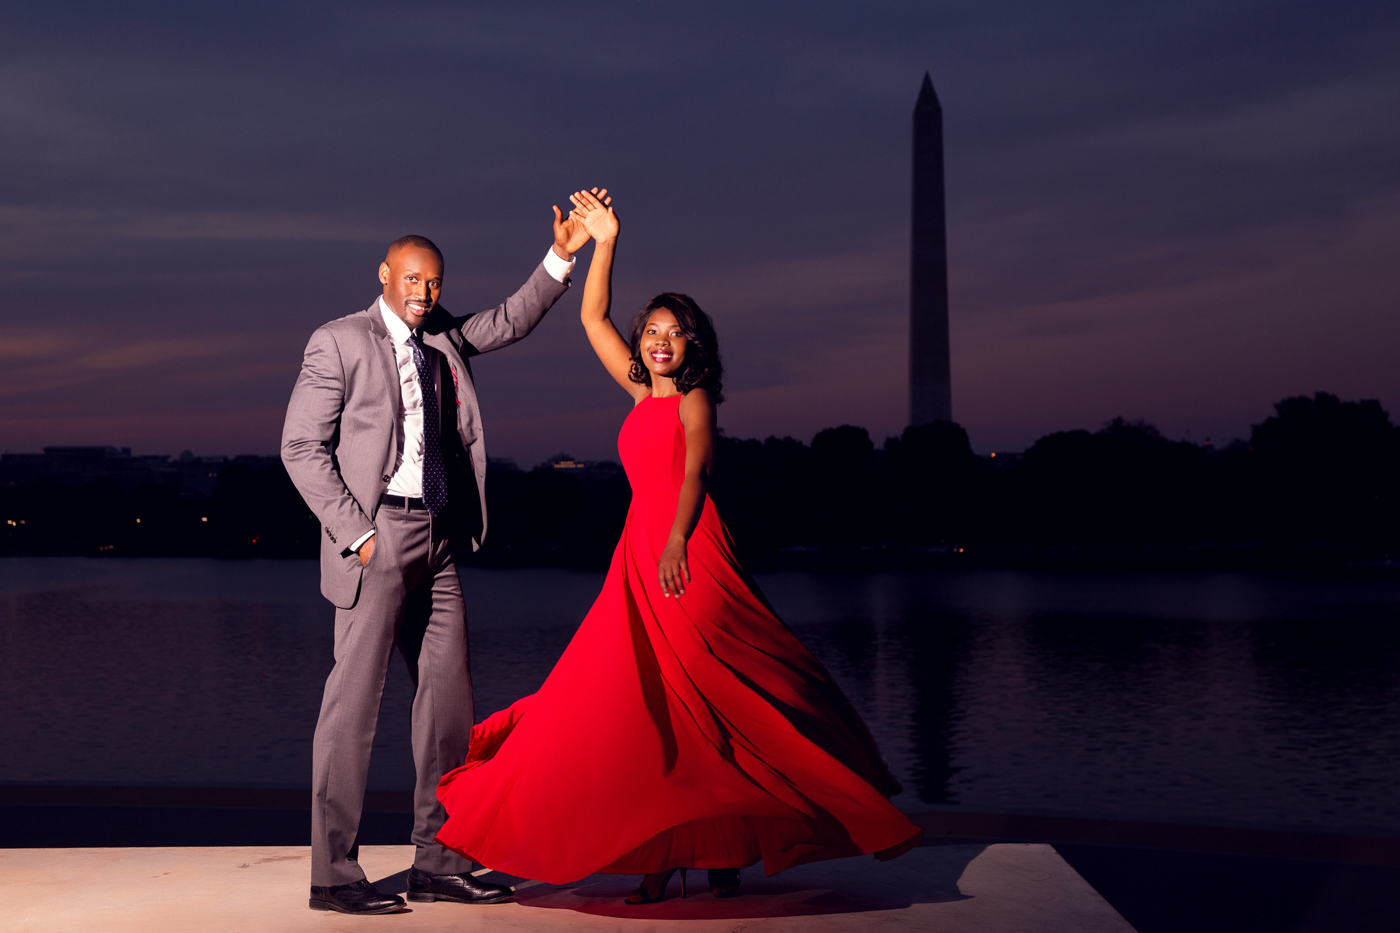 Jessica-Daniel-Engagement-Photo-Shoot-in-the-heart-of-Washington-DC-Ksenia-Pro-Photography-16